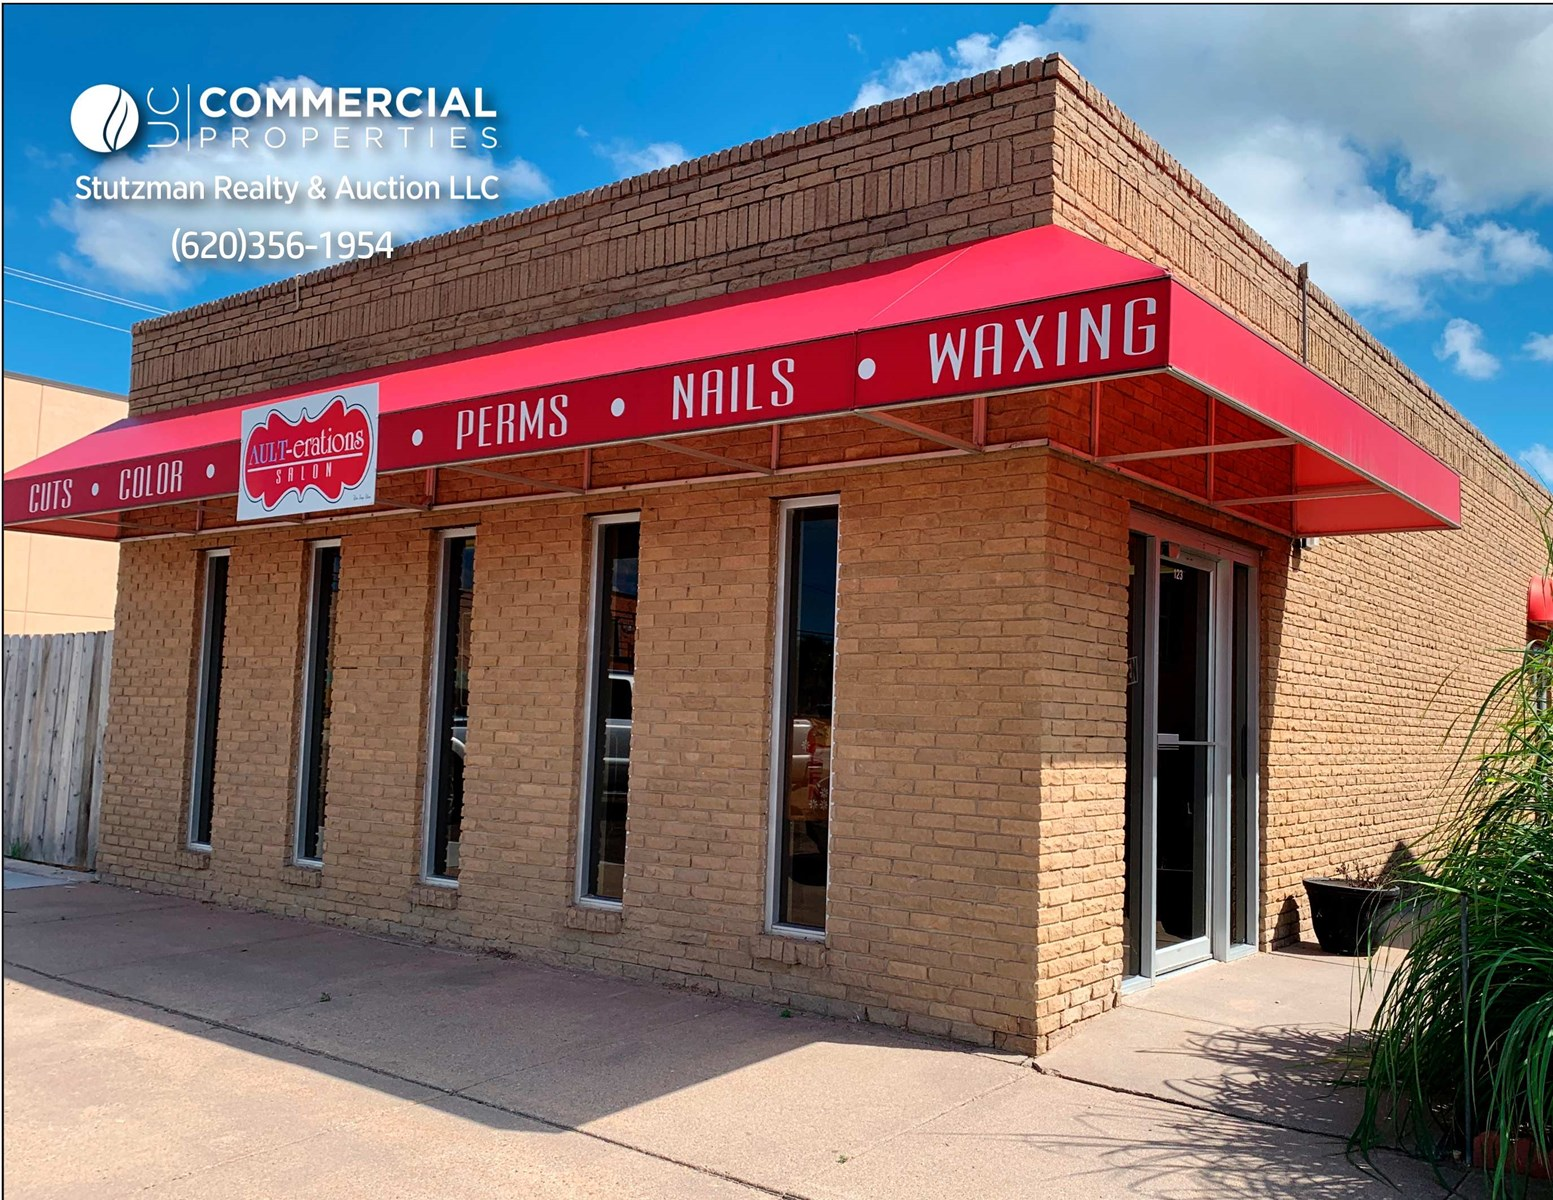 COMMERCIAL PROPERTY FOR SALE IN ULYSSES, KANSAS